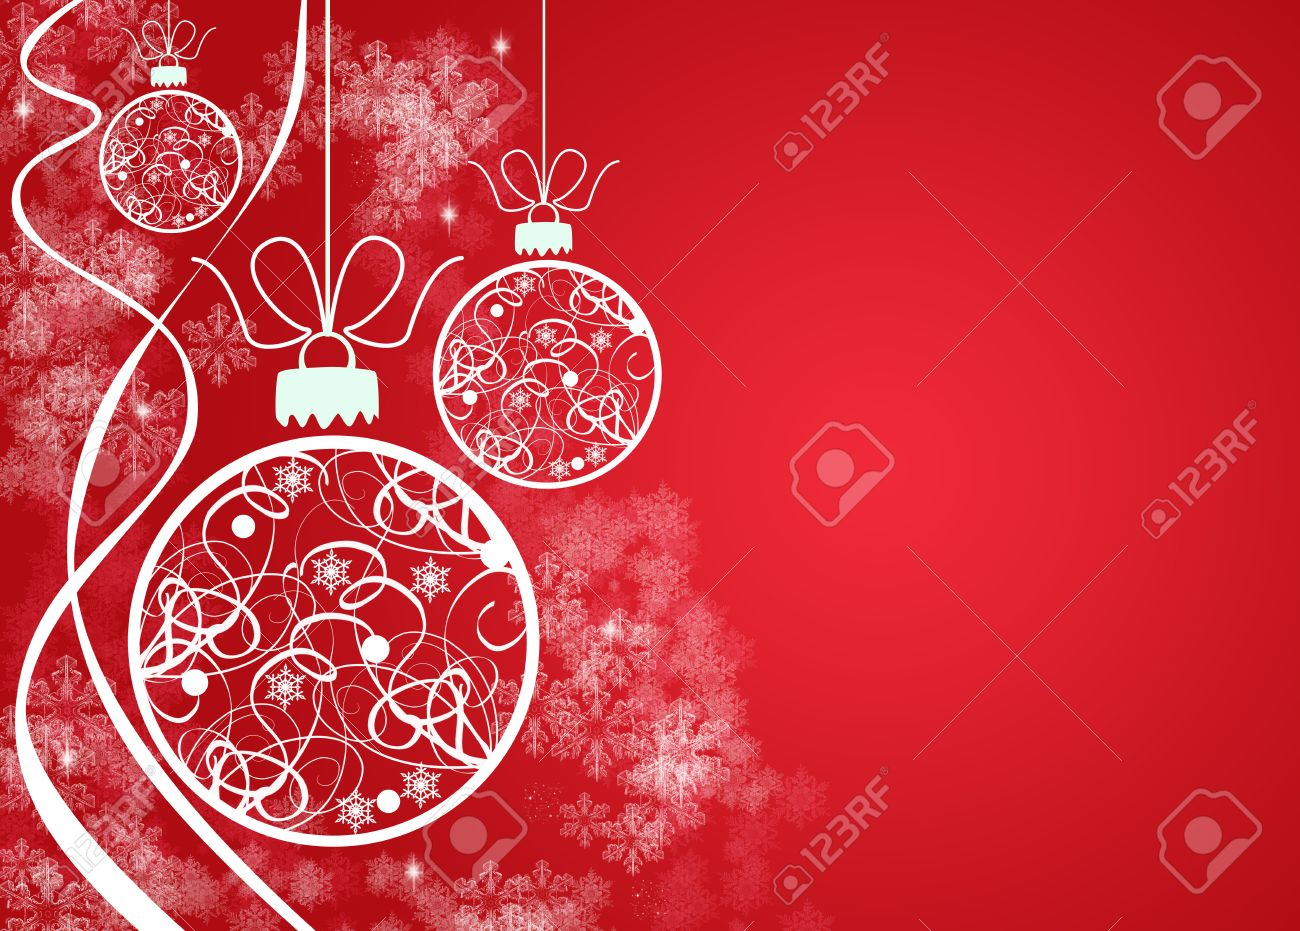 merry christmas decoration poster or flyer background space merry christmas decoration poster or flyer background space stock photo 23419472